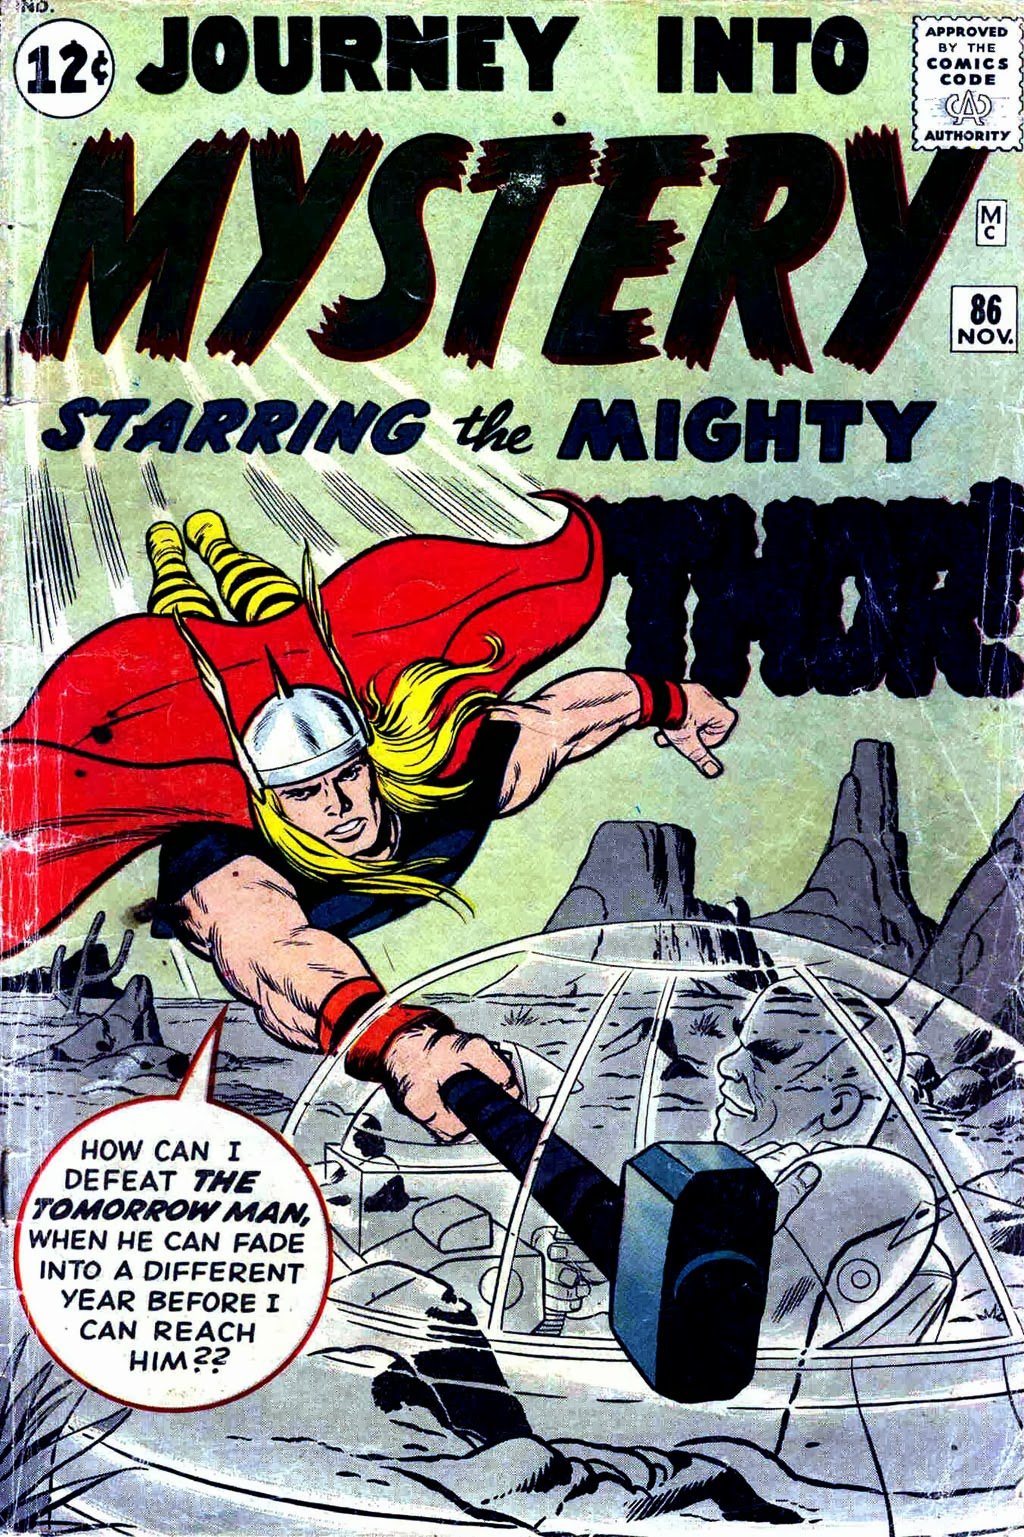 Journey Into Mystery #86 image